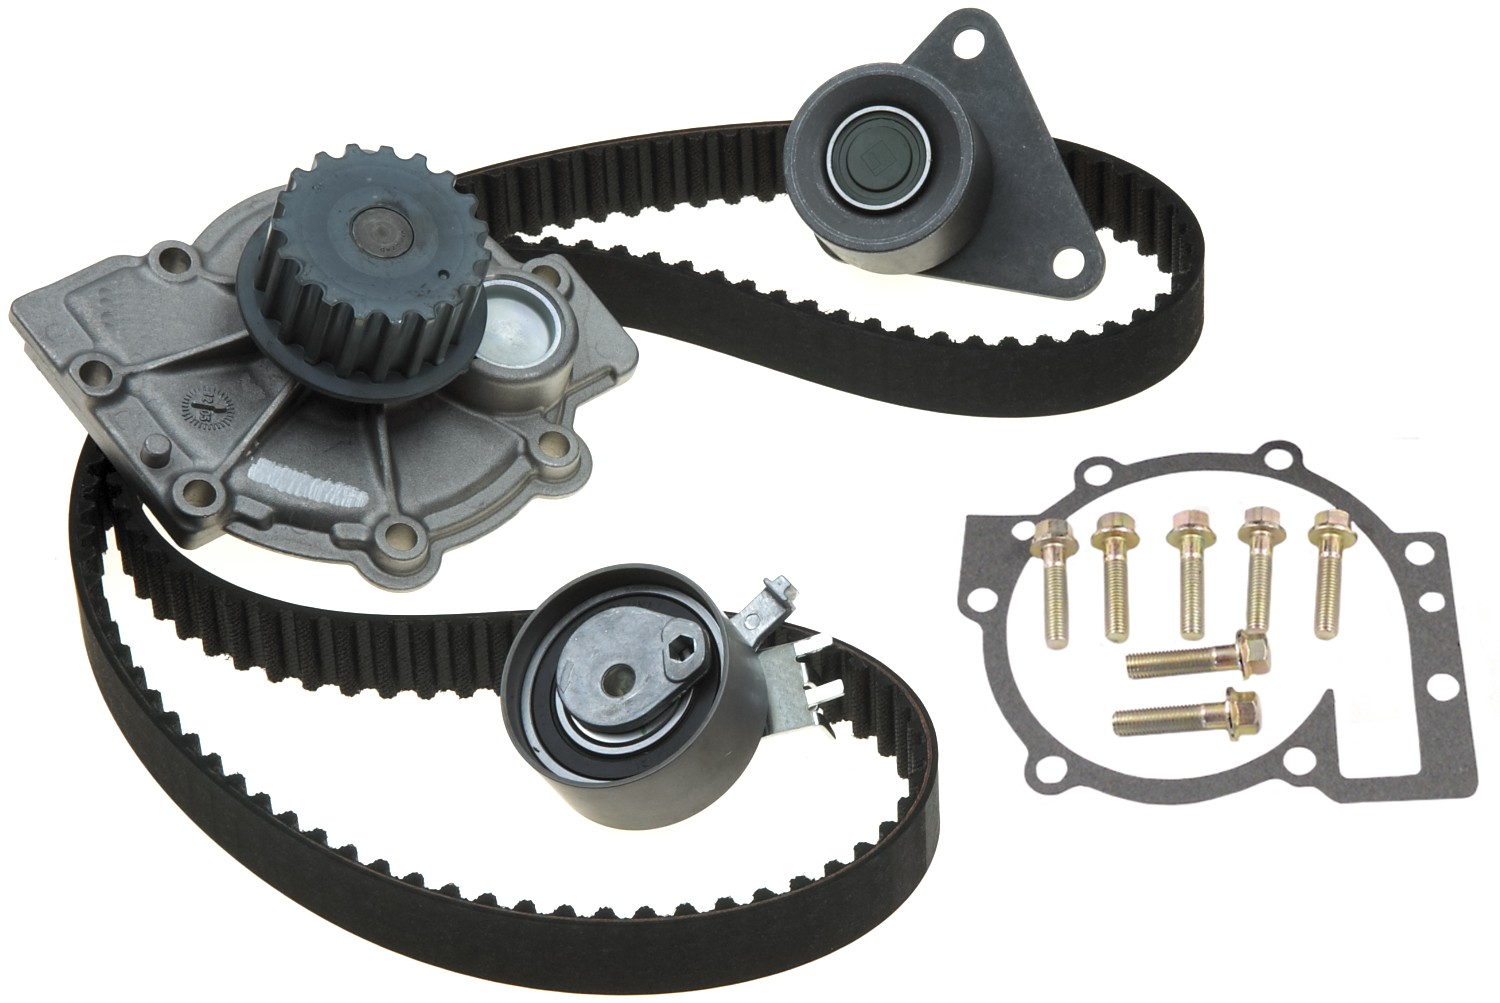 hight resolution of 2008 volvo s60 engine timing belt kit with water pump zo tckwp331